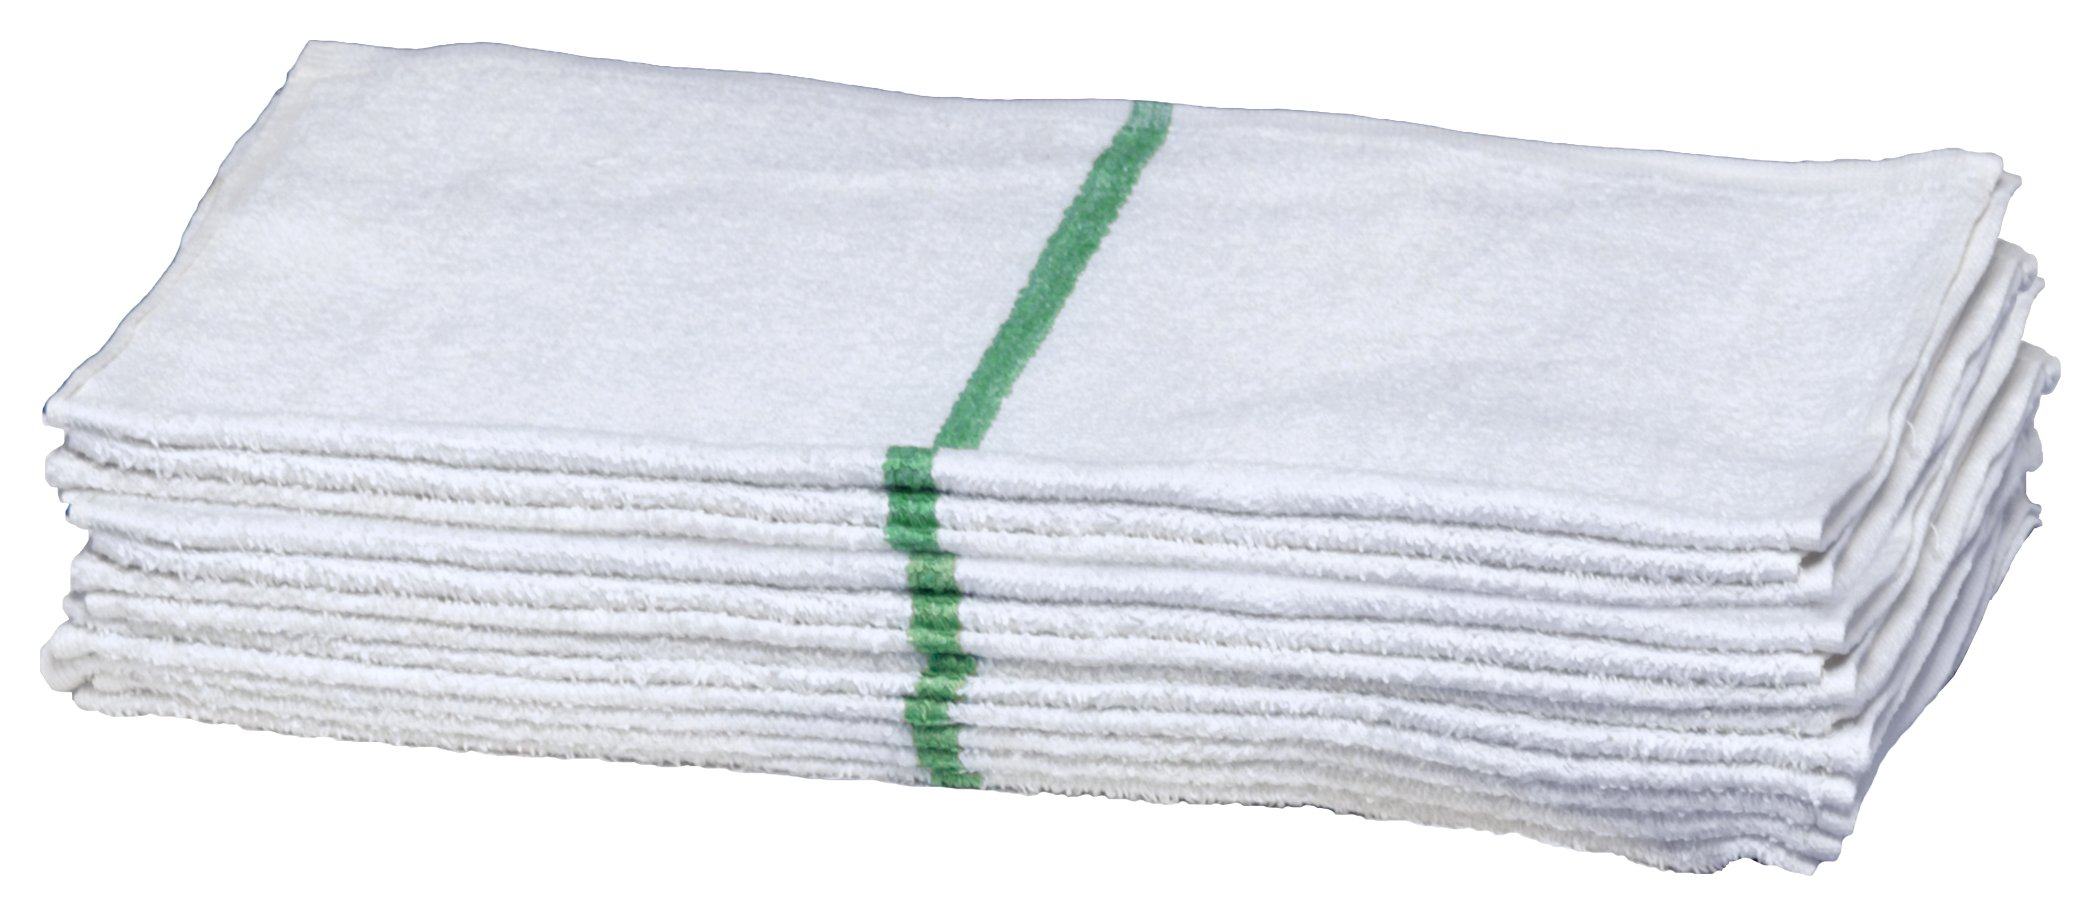 Pro-Clean Basics A51764 Striped Bar Towel, 16'' x 19'', Green (Pack of 300)